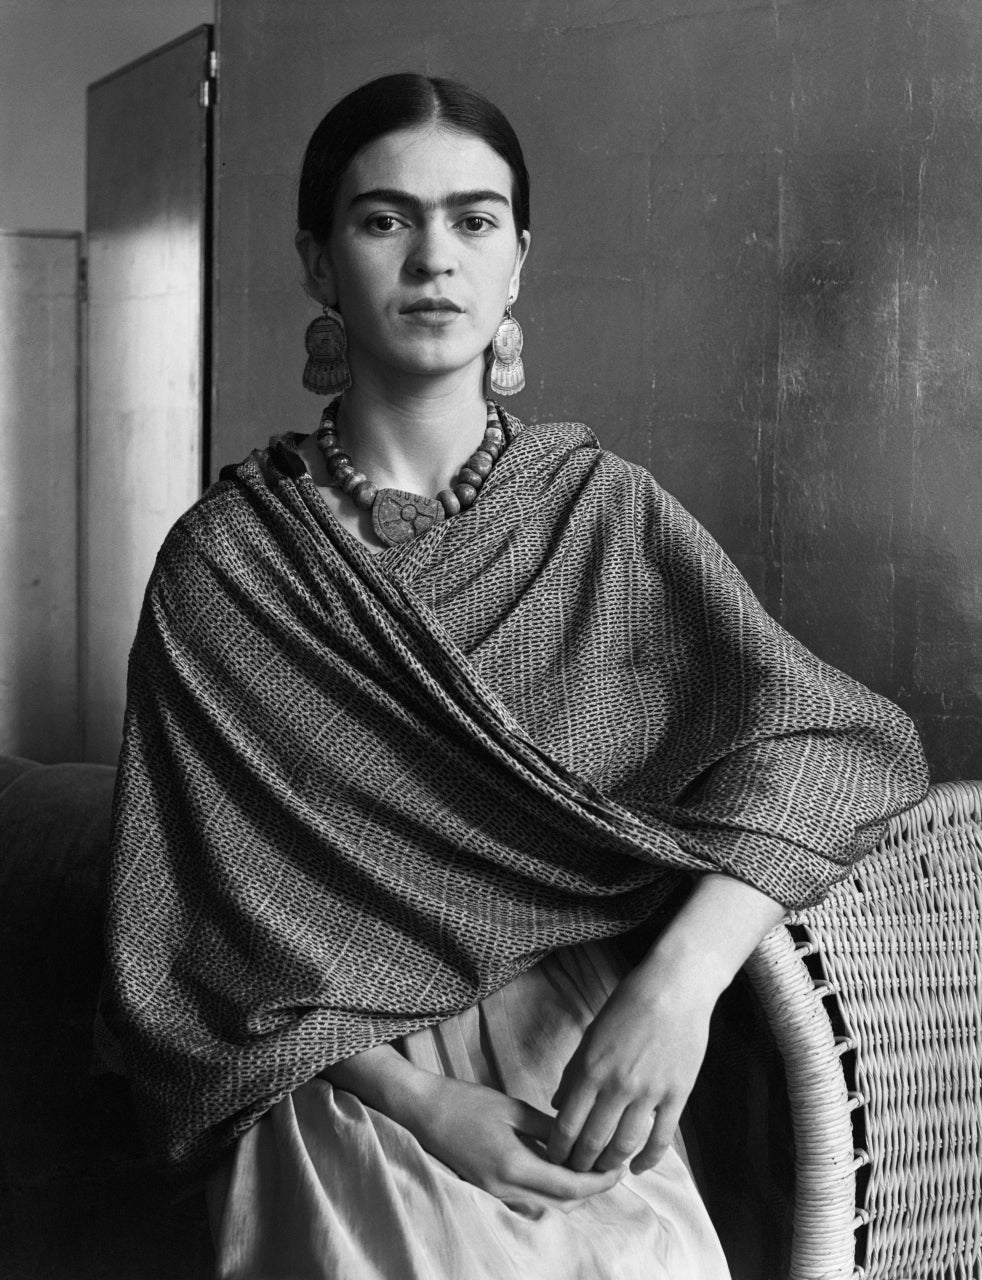 Frida Kahlo Rivera, Painter and Wife of Diego Rivera